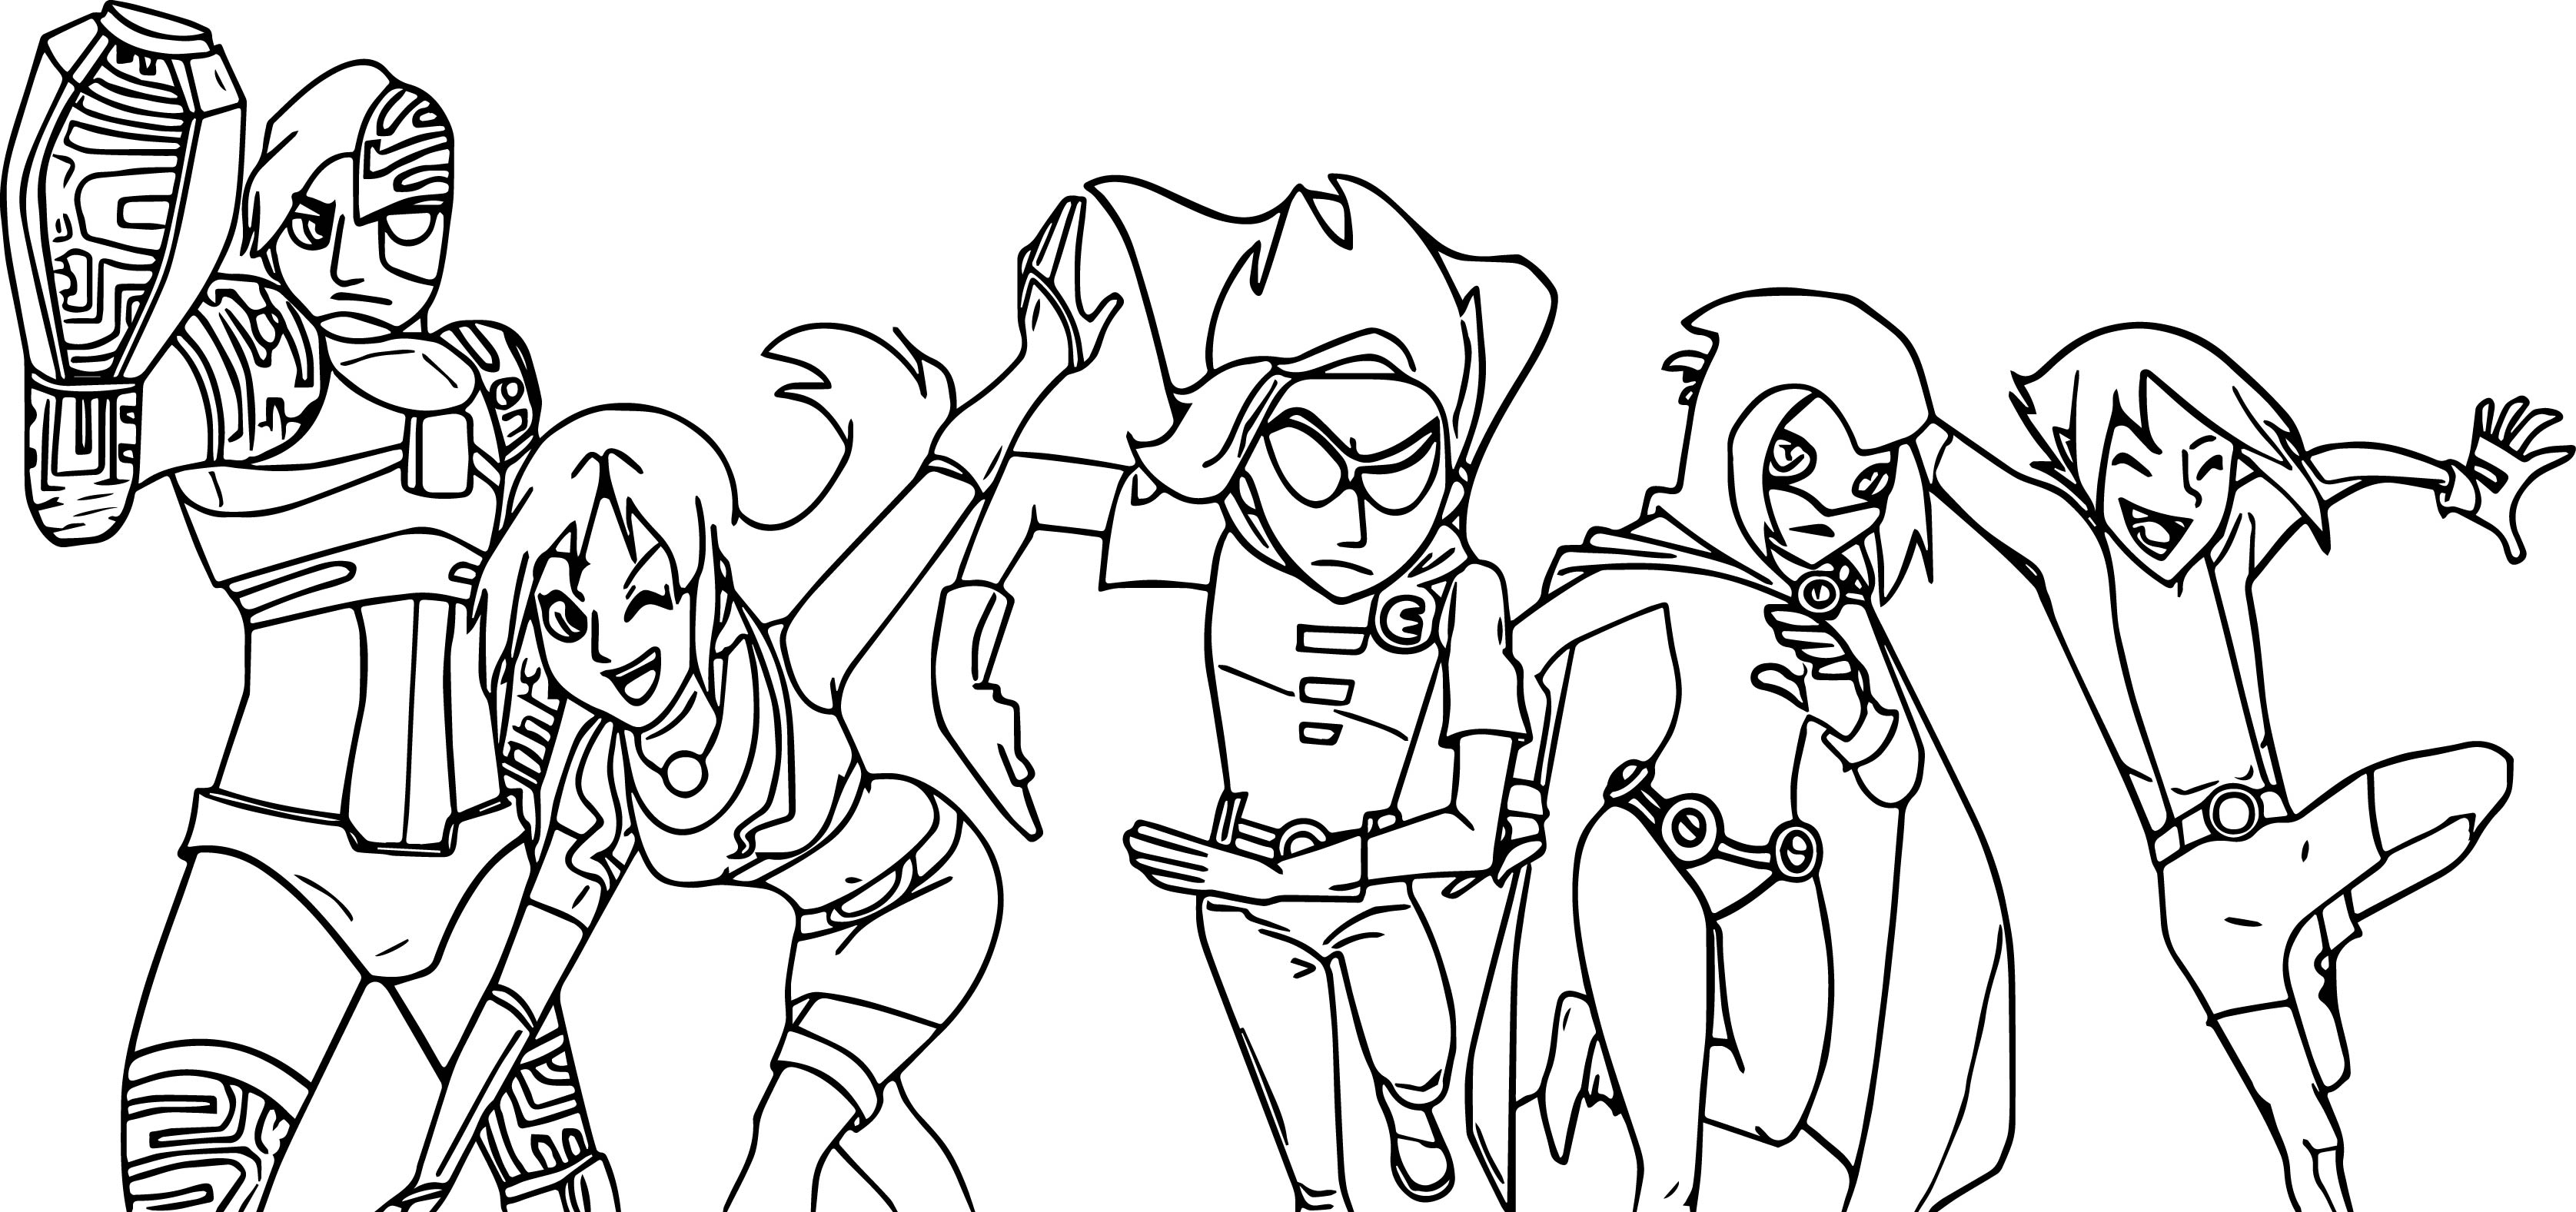 My Chars As Teen Titans Go Coloring Page  Wecoloringpage